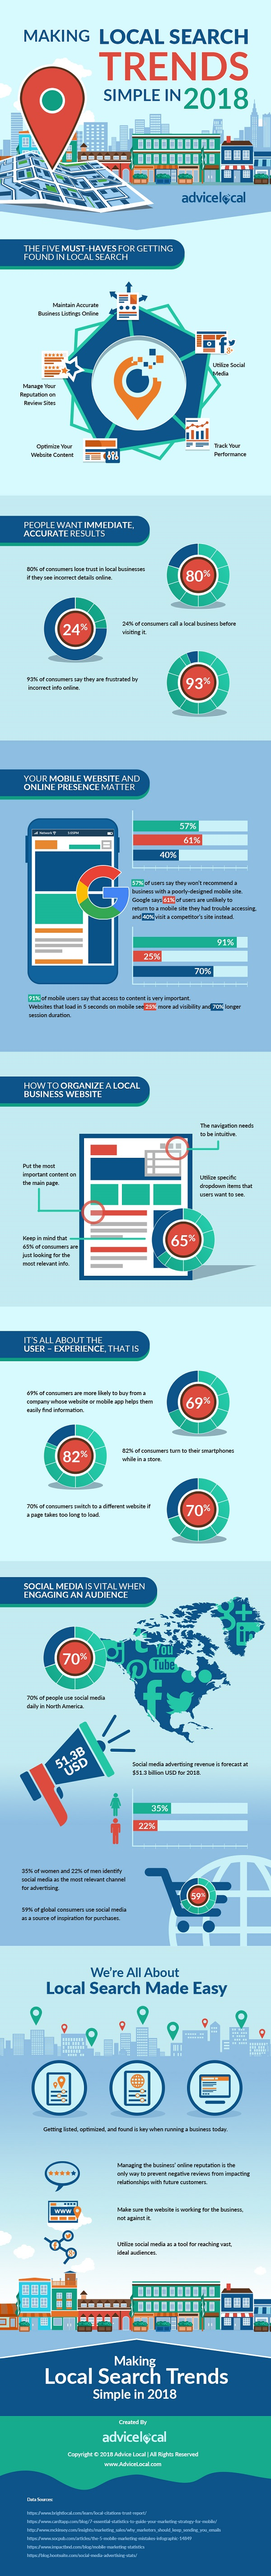 Infographic provides an overview of local SEO stats and tips